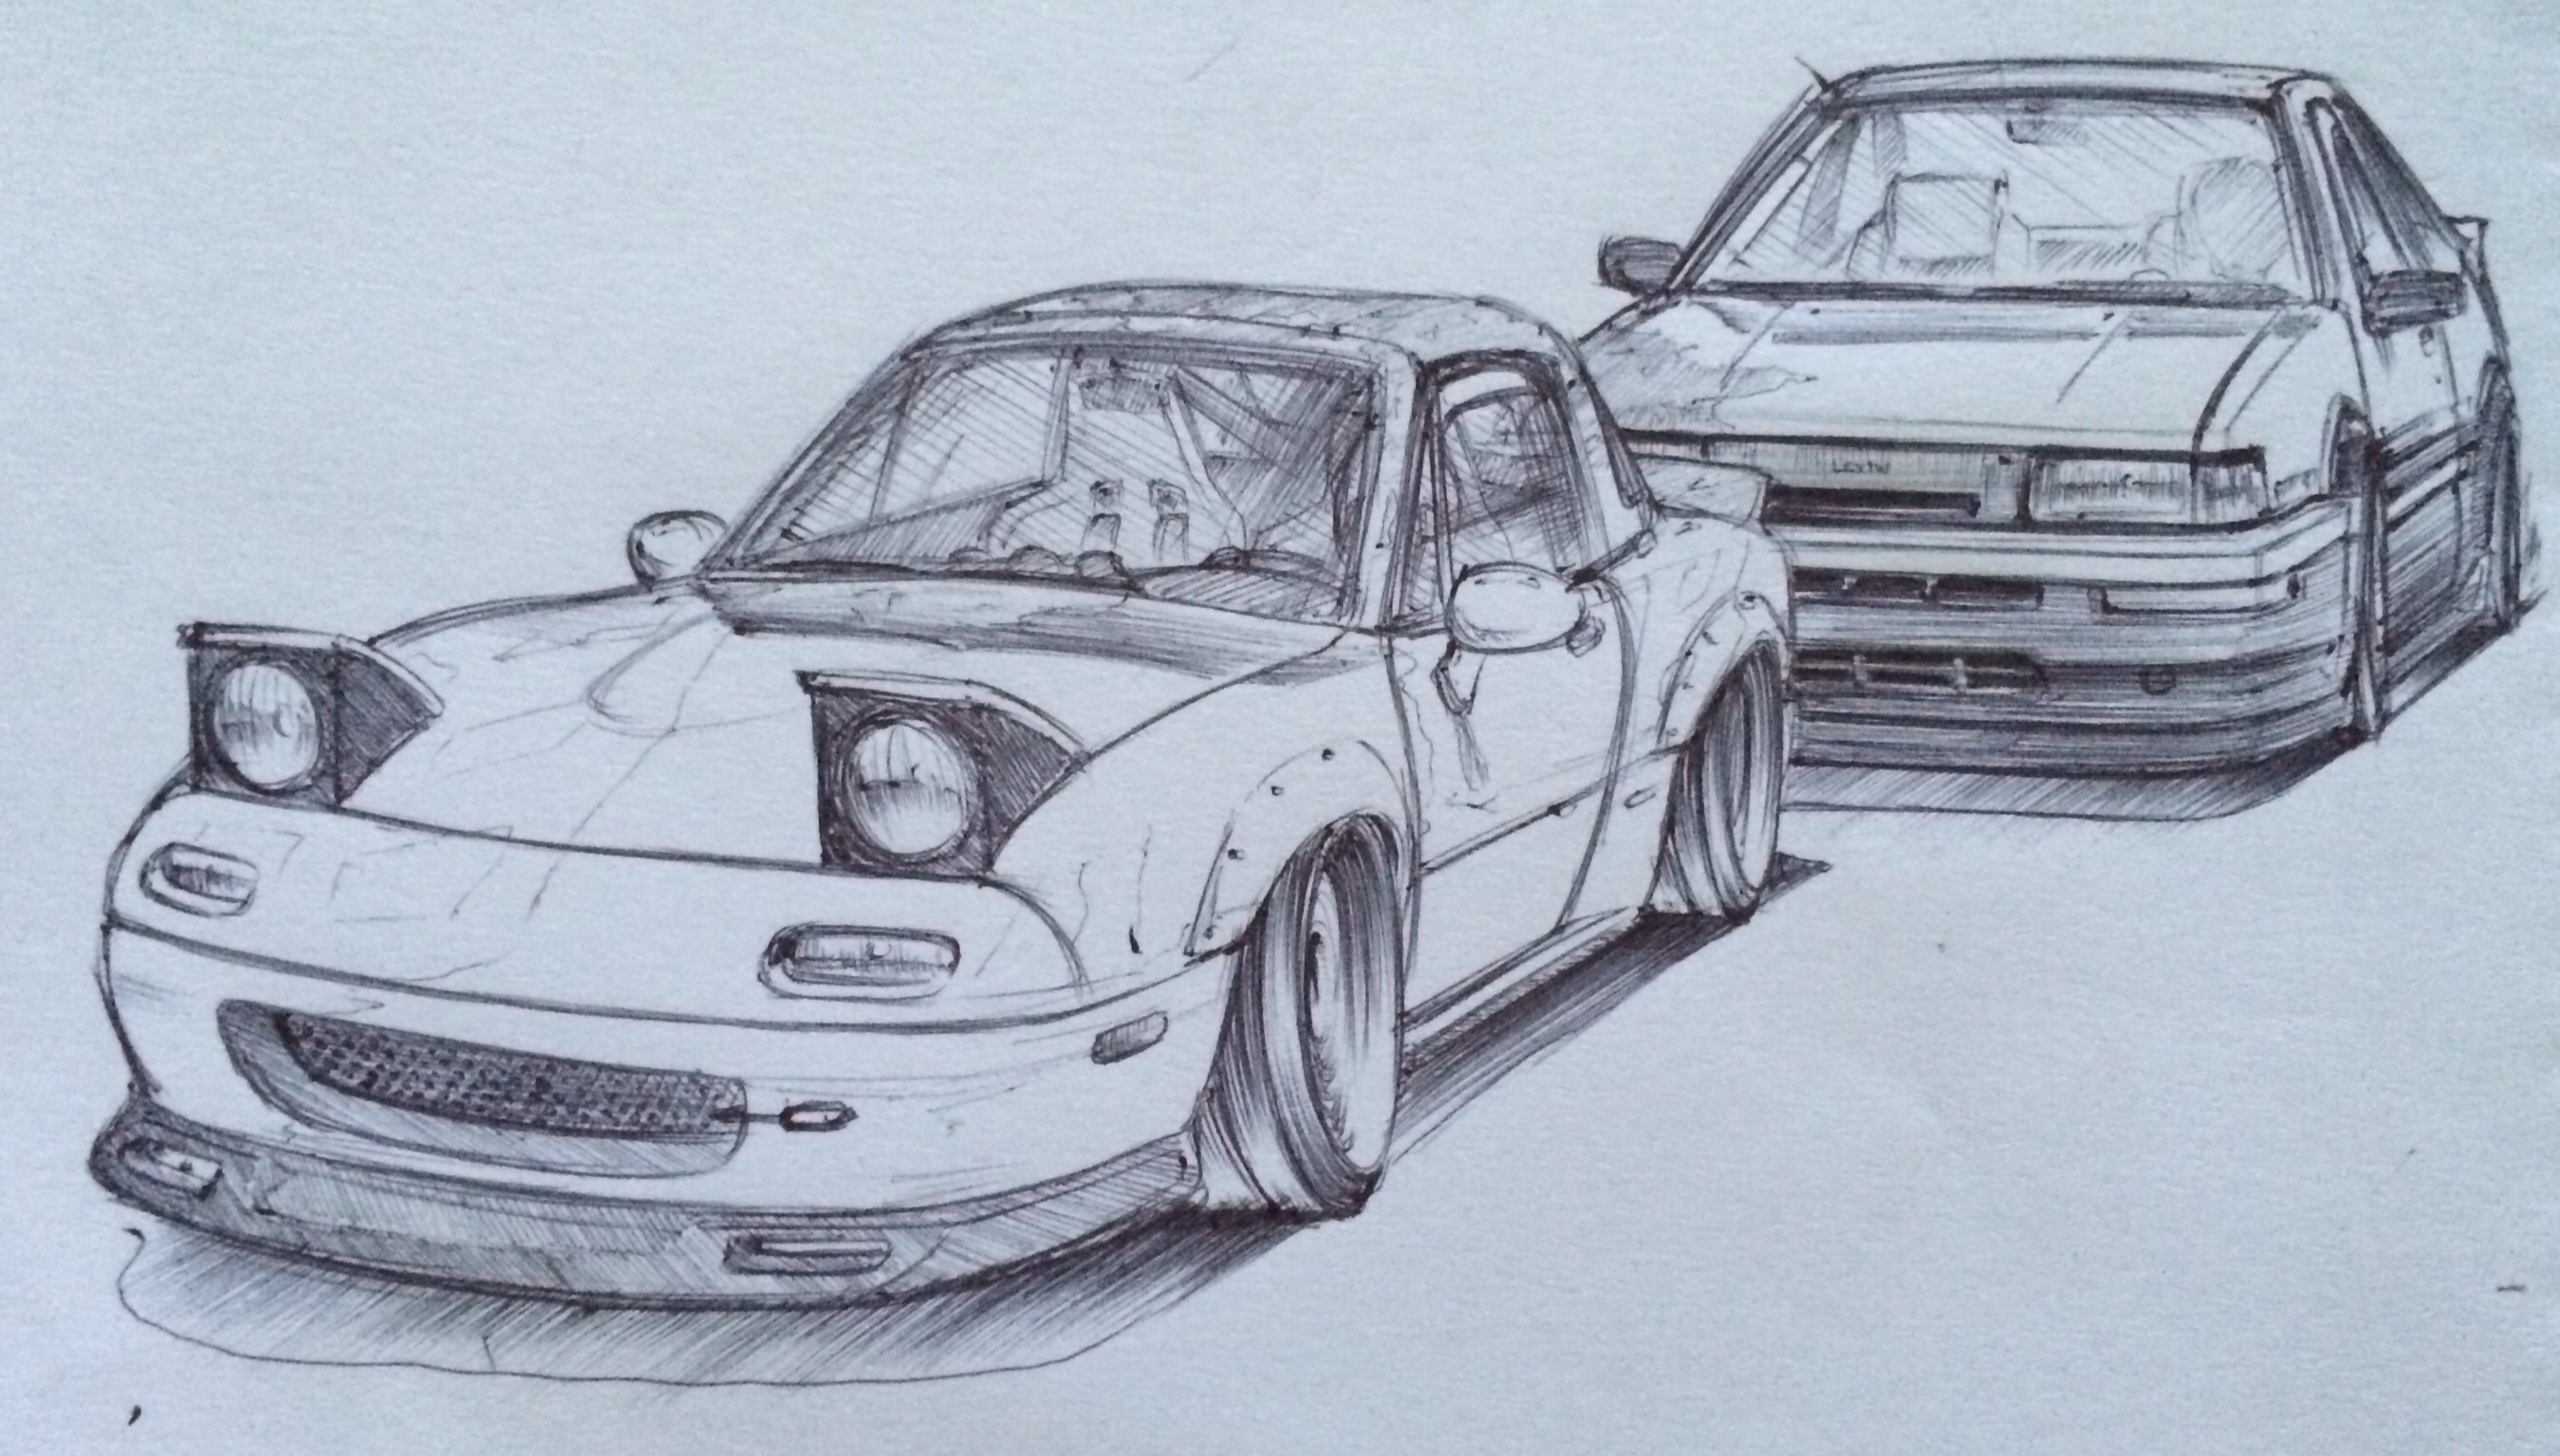 Sketch Miata Vs Levin Wip By Tougedrifting85 On Deviantart